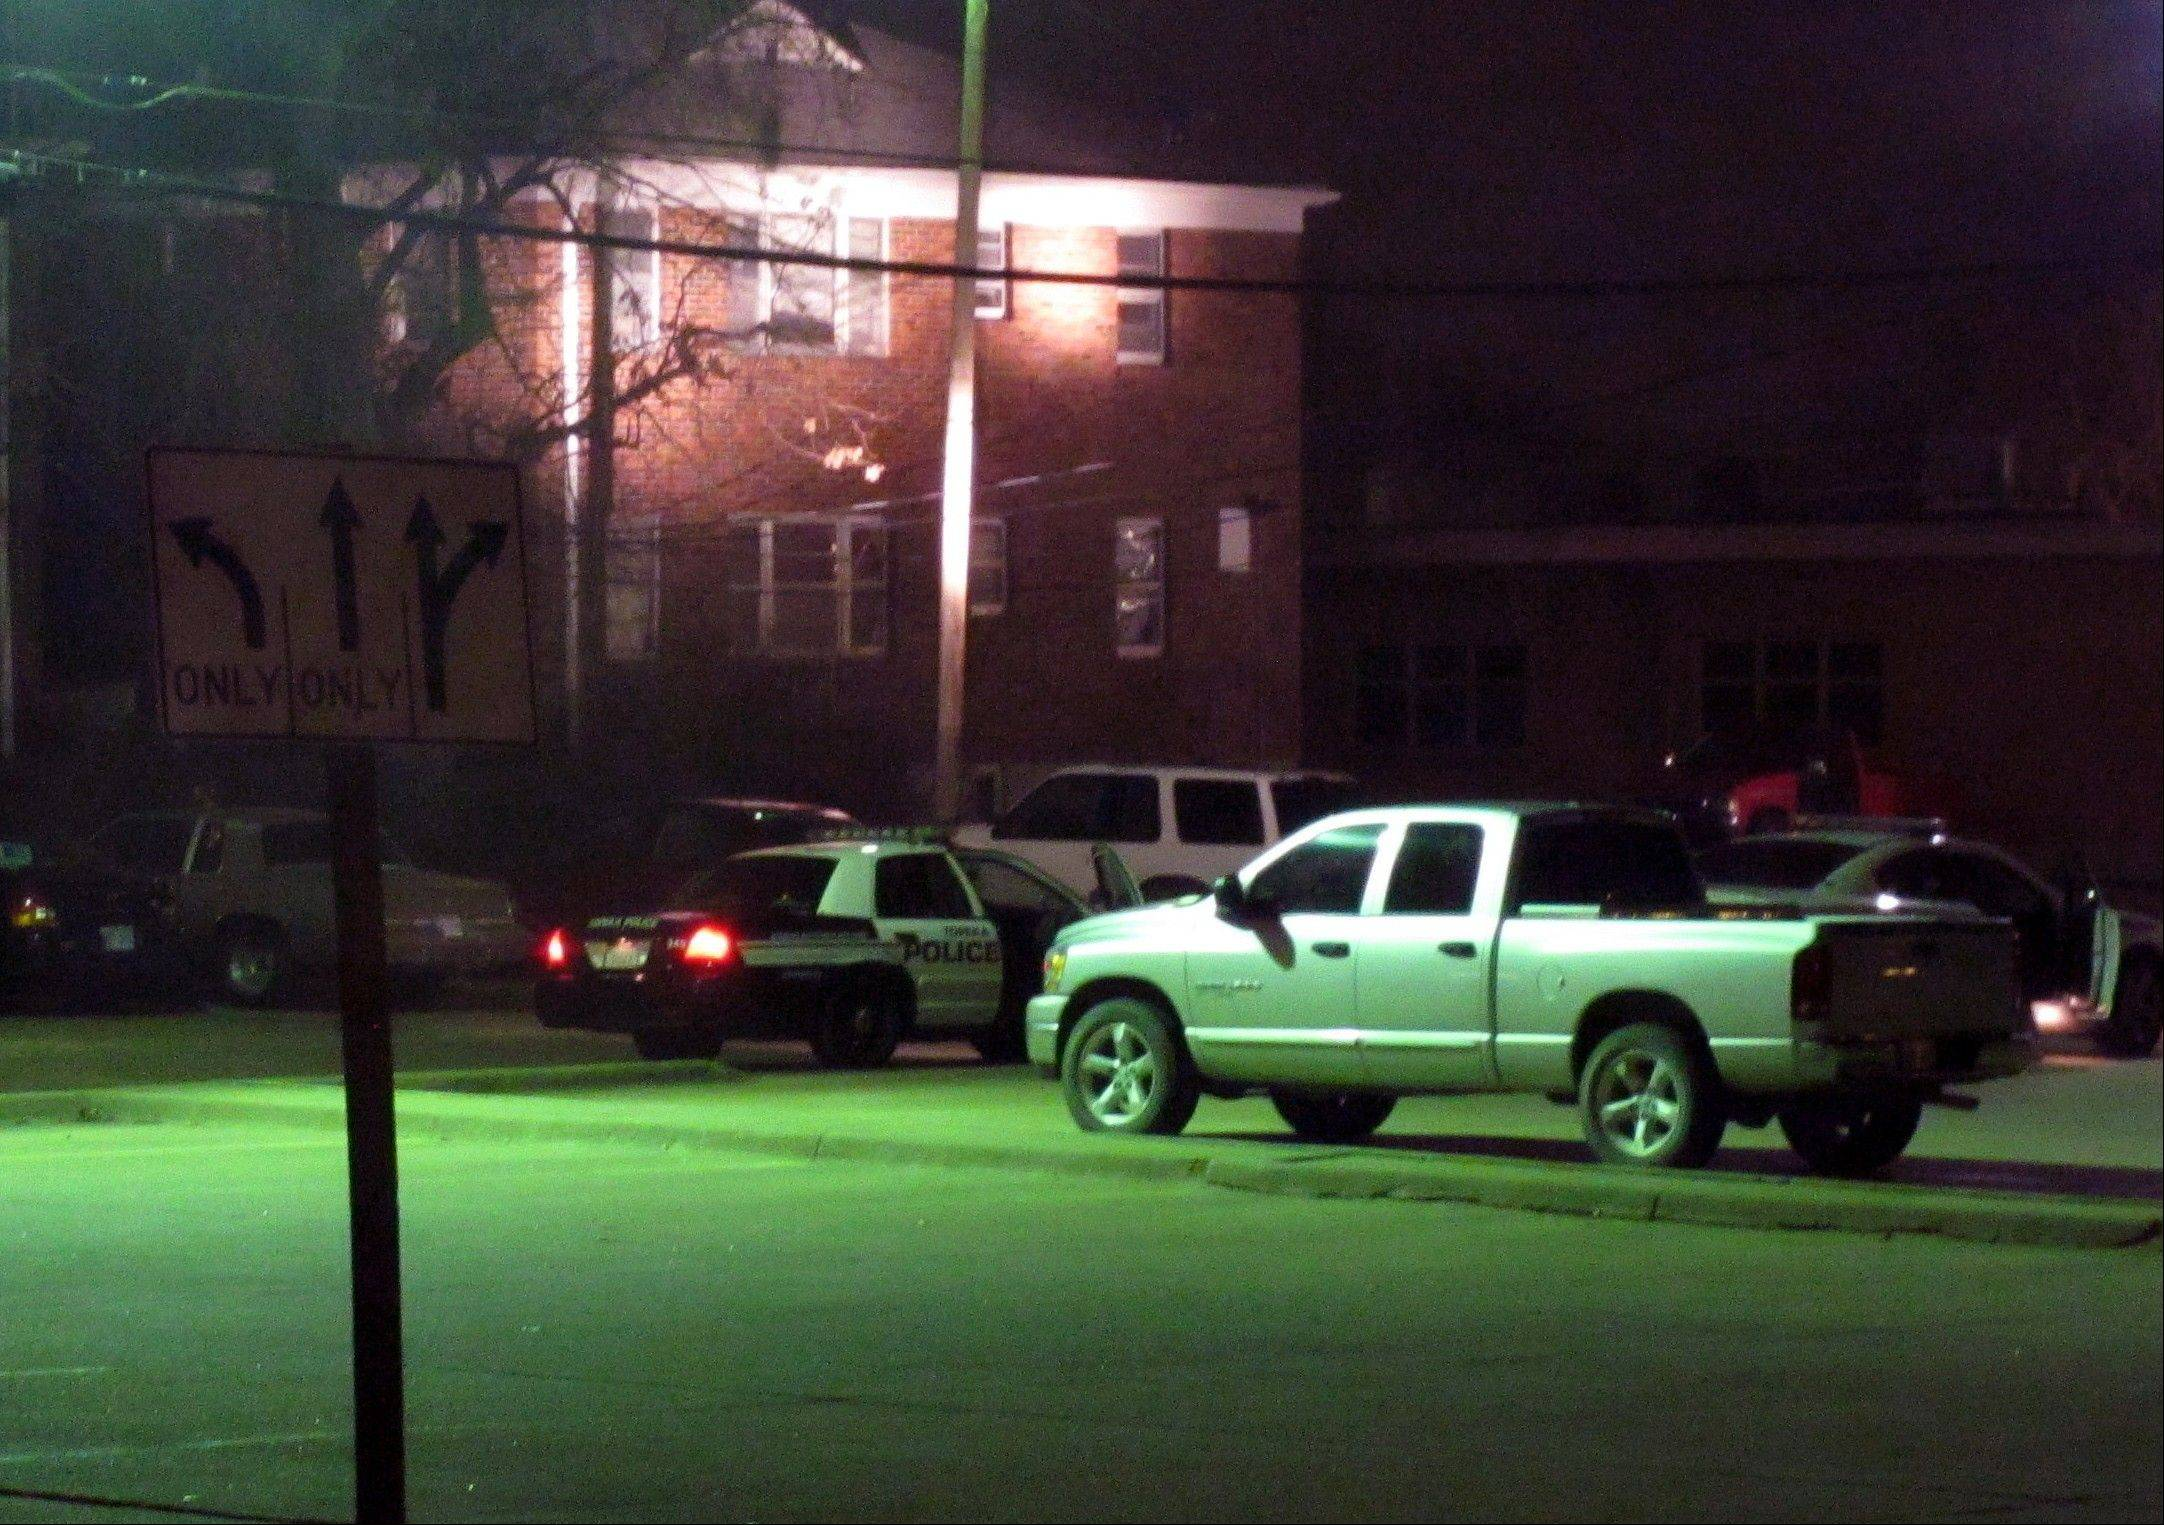 Law enforcement vehicles surround the backside of an apartment complex evacuated by authorities as they hunted for a 22-year-old man suspected of fatally shooting two police officers Sunday in Topeka, Kan.